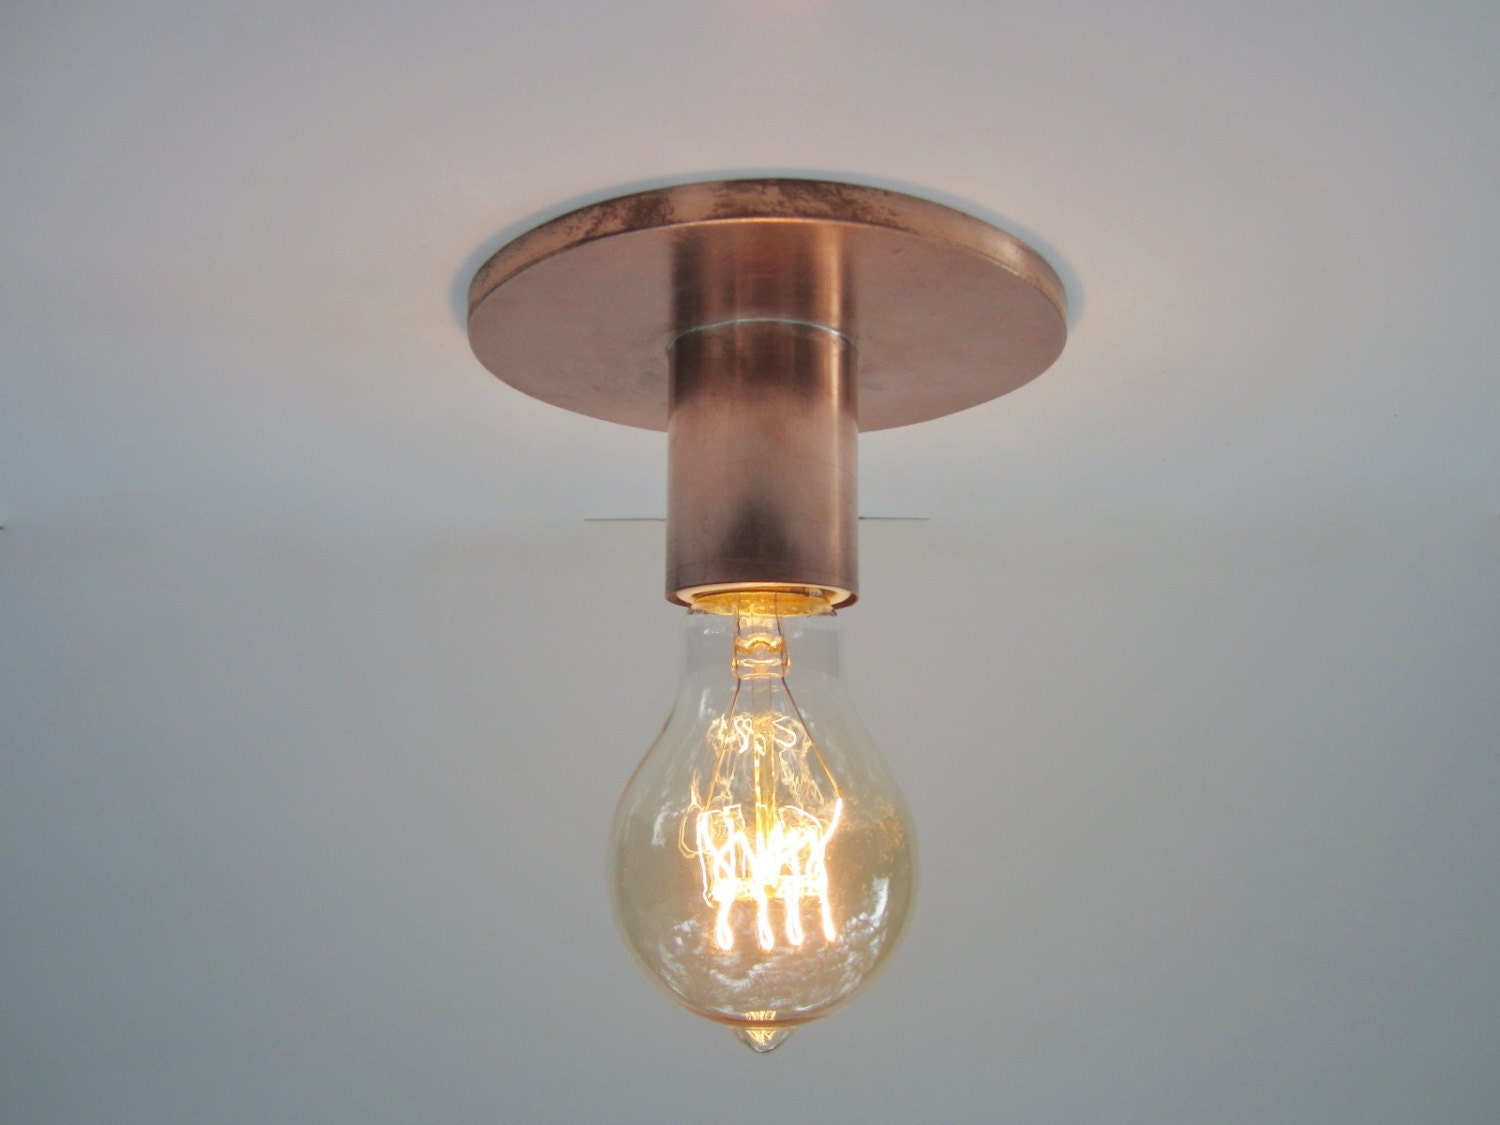 Flush mount ceiling light or wall sconce industrial lighting zoom aloadofball Image collections